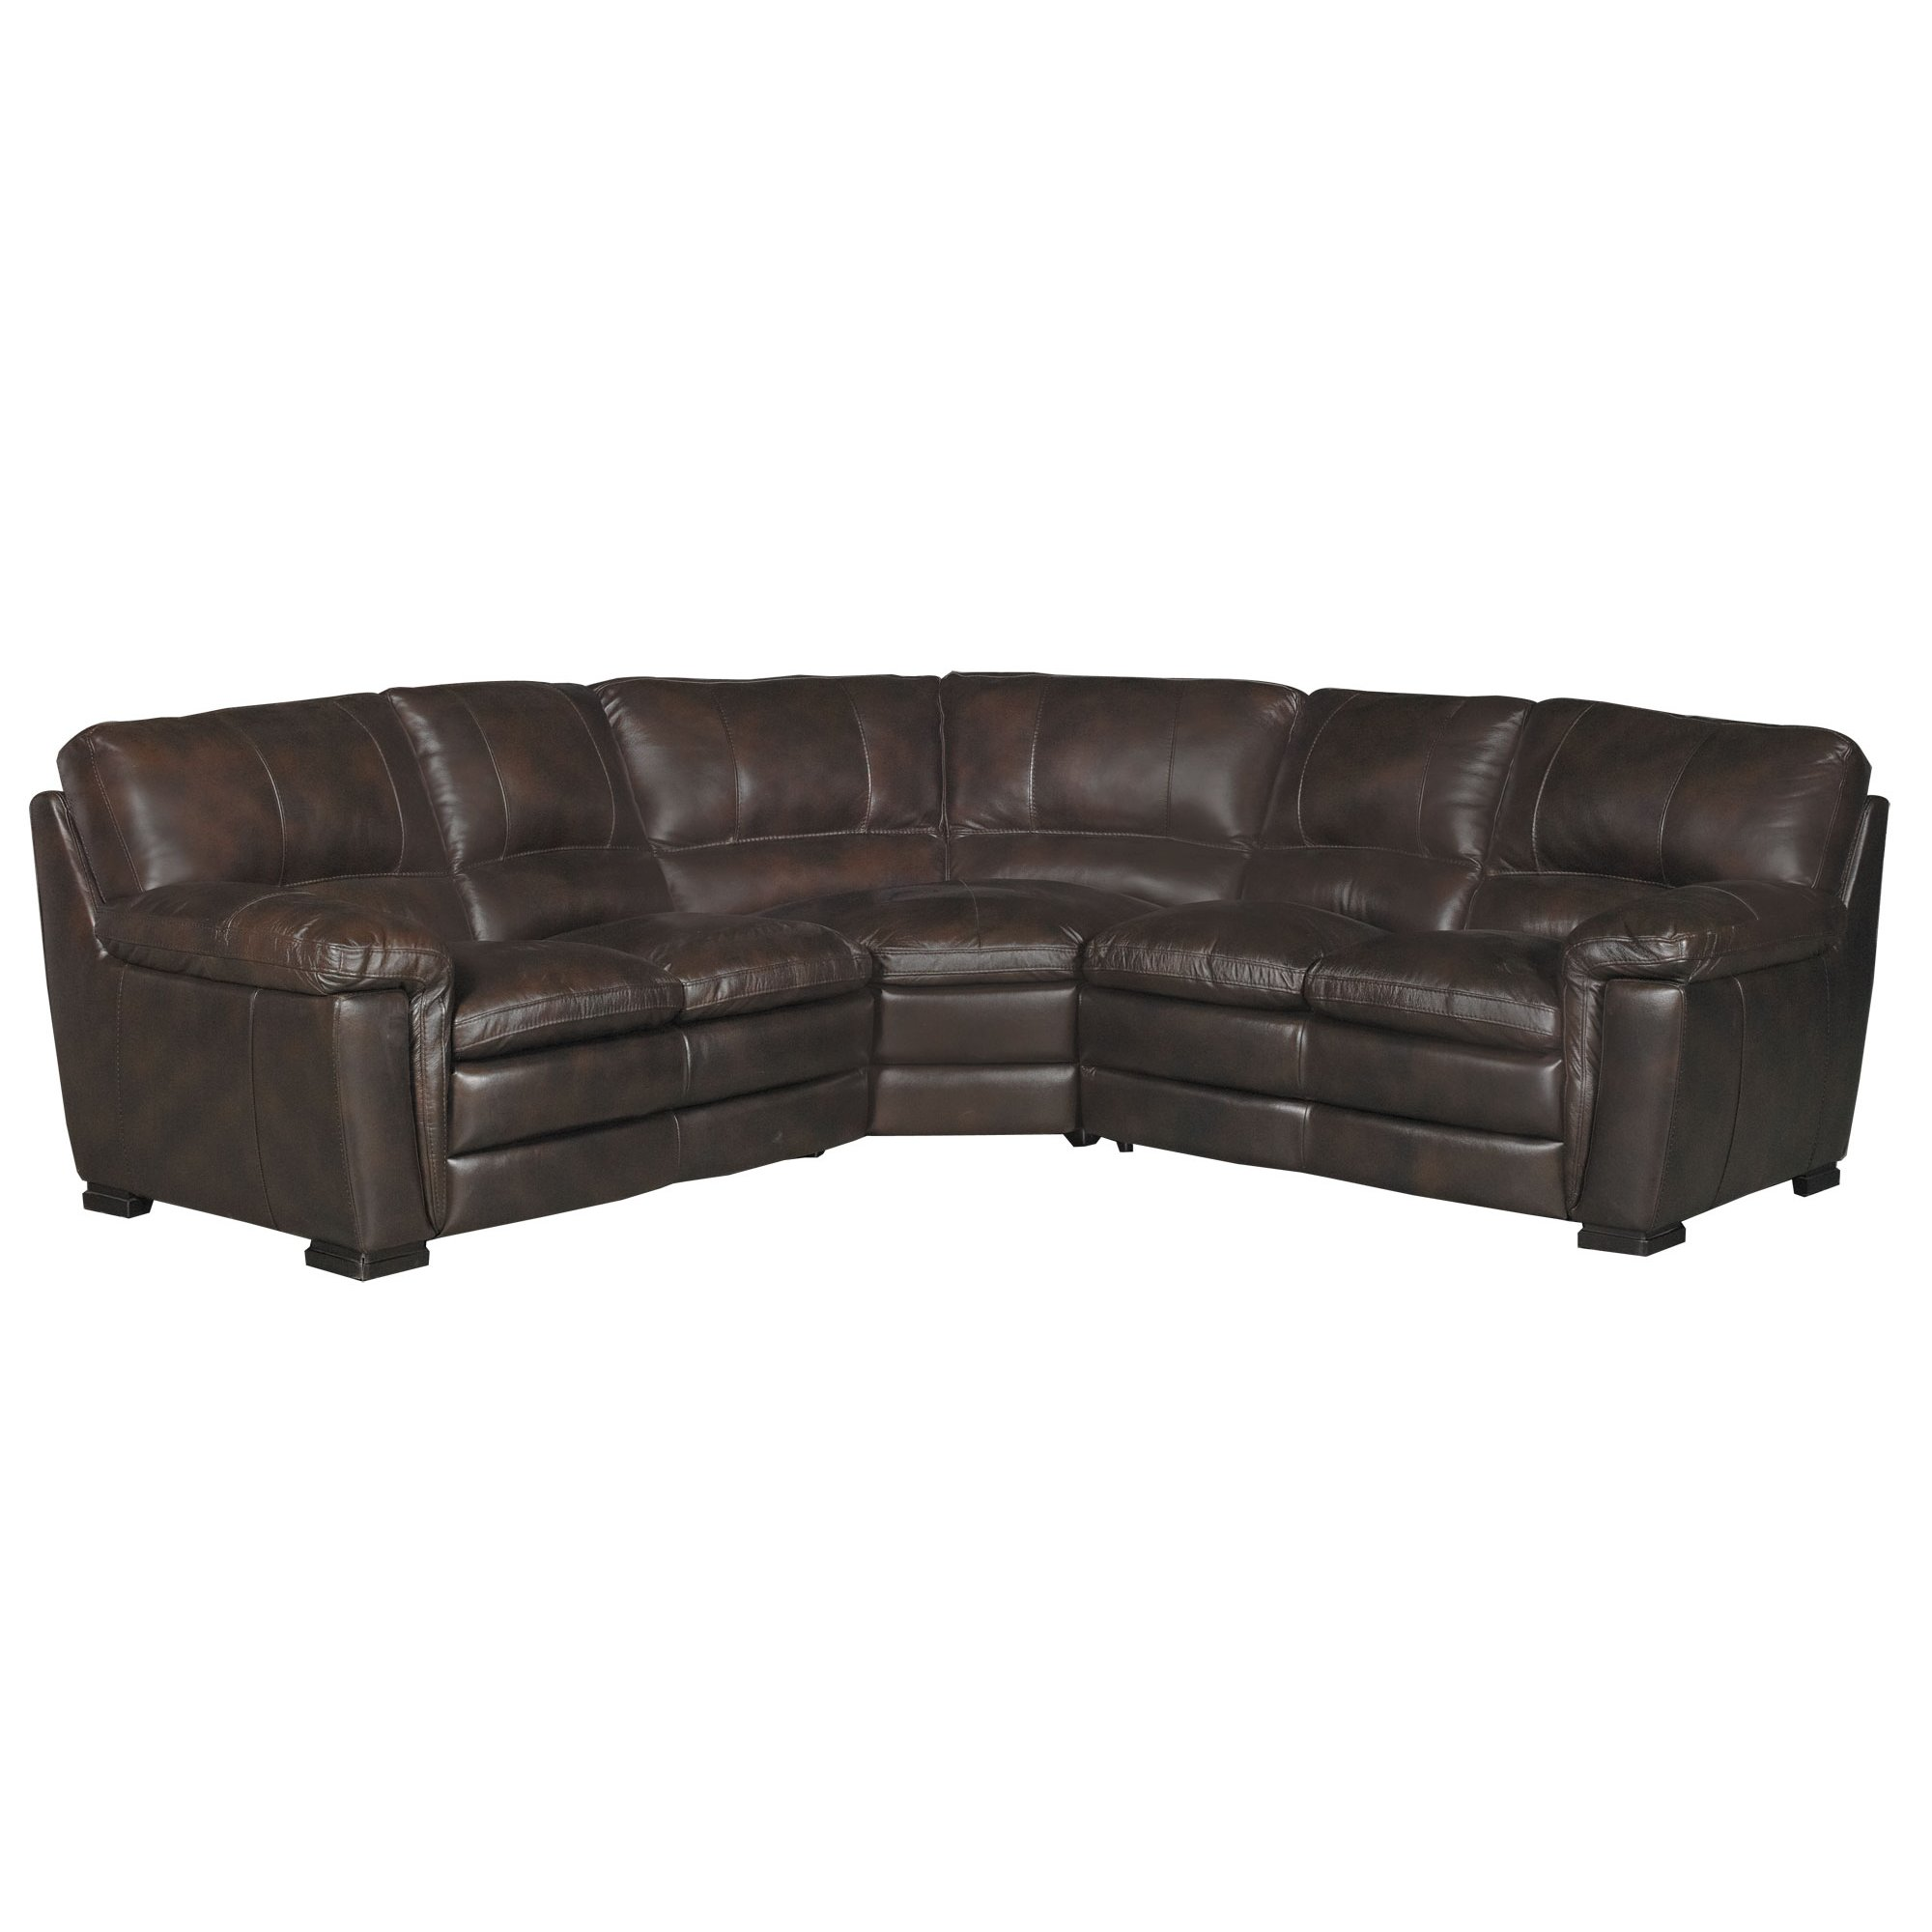 magnolia leather taupe com sectional italia product habitusfurniture idp sofa